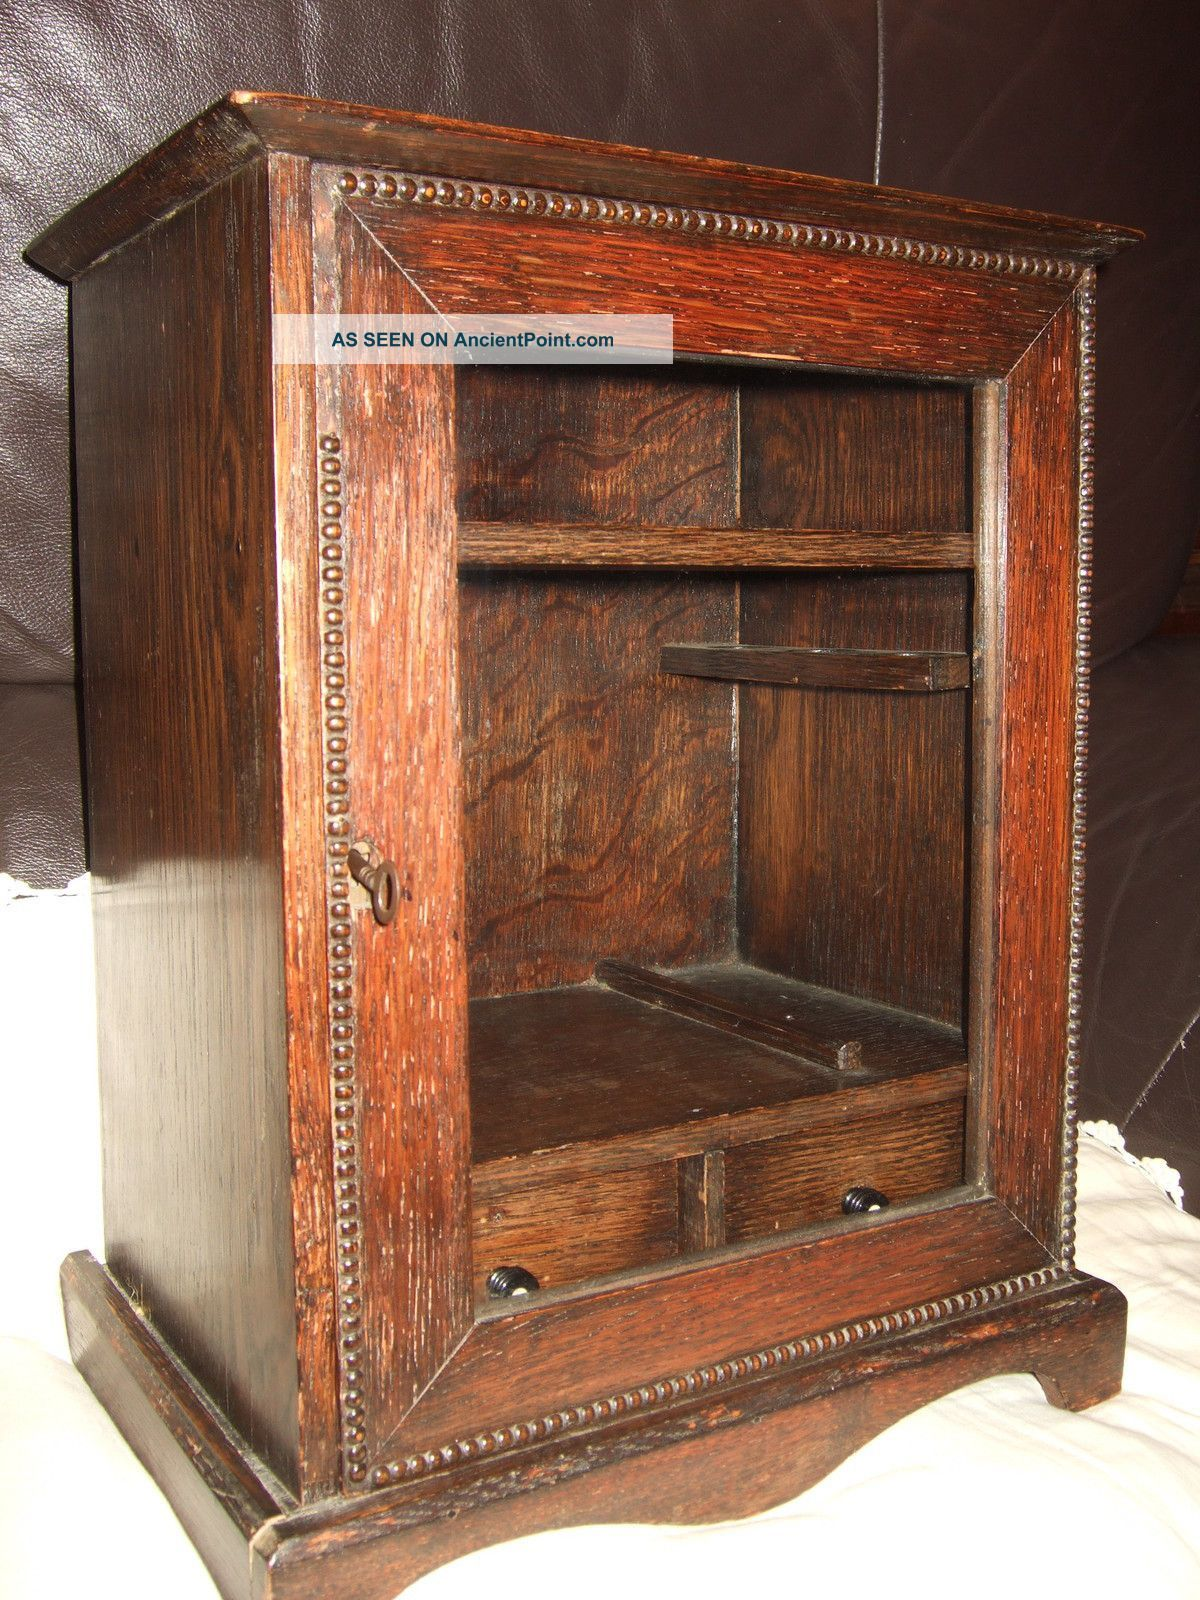 Antique Wall Cabinet Images | Antique Oak Wall Cabinet Smoking Pipe Tobacco  Cupboard With Key .